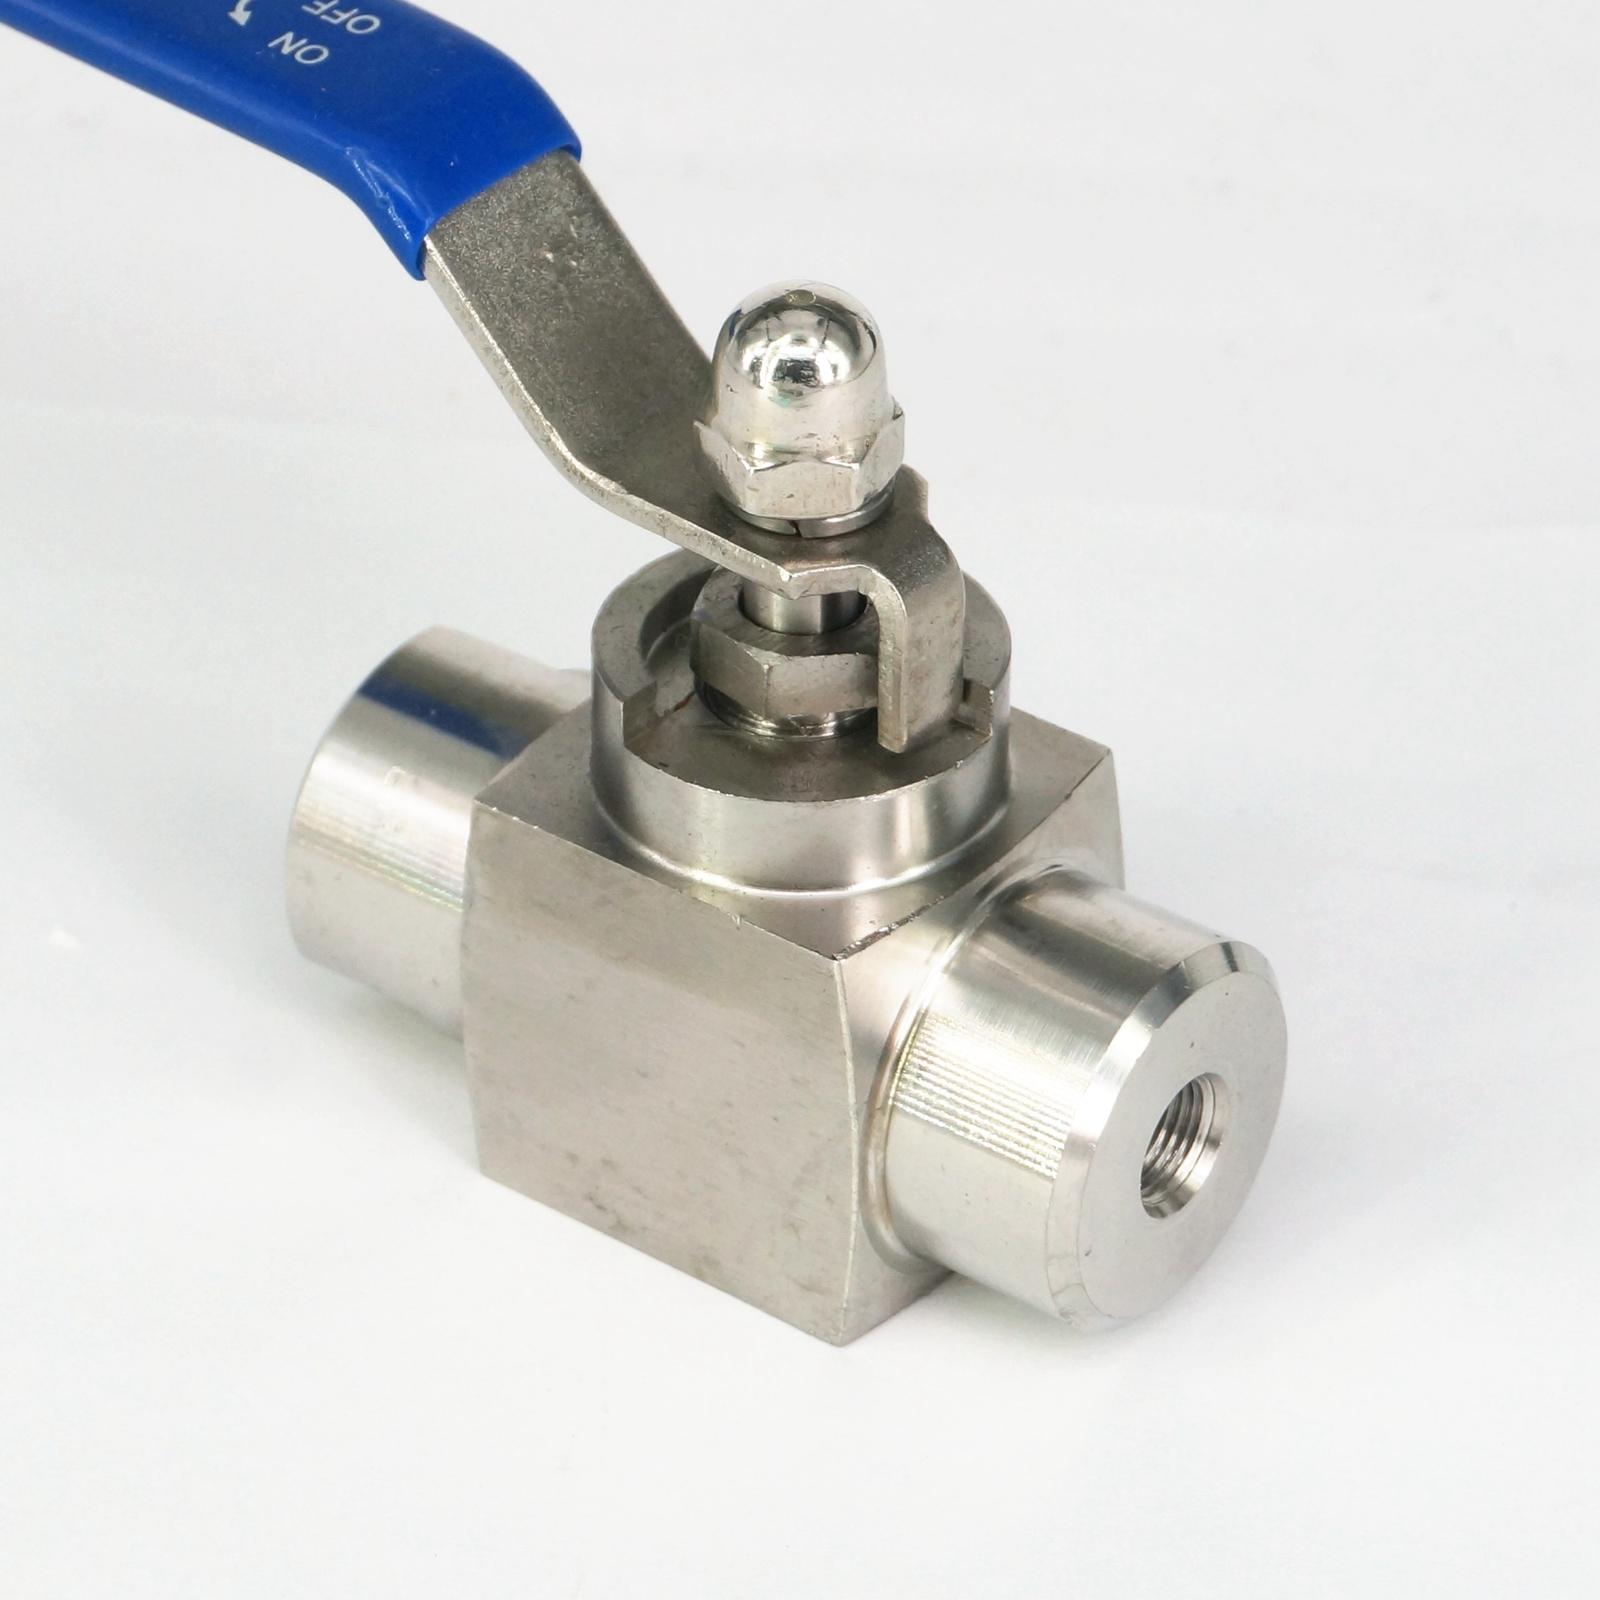 1/8 BSP Female 304 Stainless Steel Shut Off Ball Valve water gas oil High Pressure 4576 PSI 1 4 bsp male to female thread 2 way 304 stainless steel dn8 2 pieces ball valve for water gas oil control